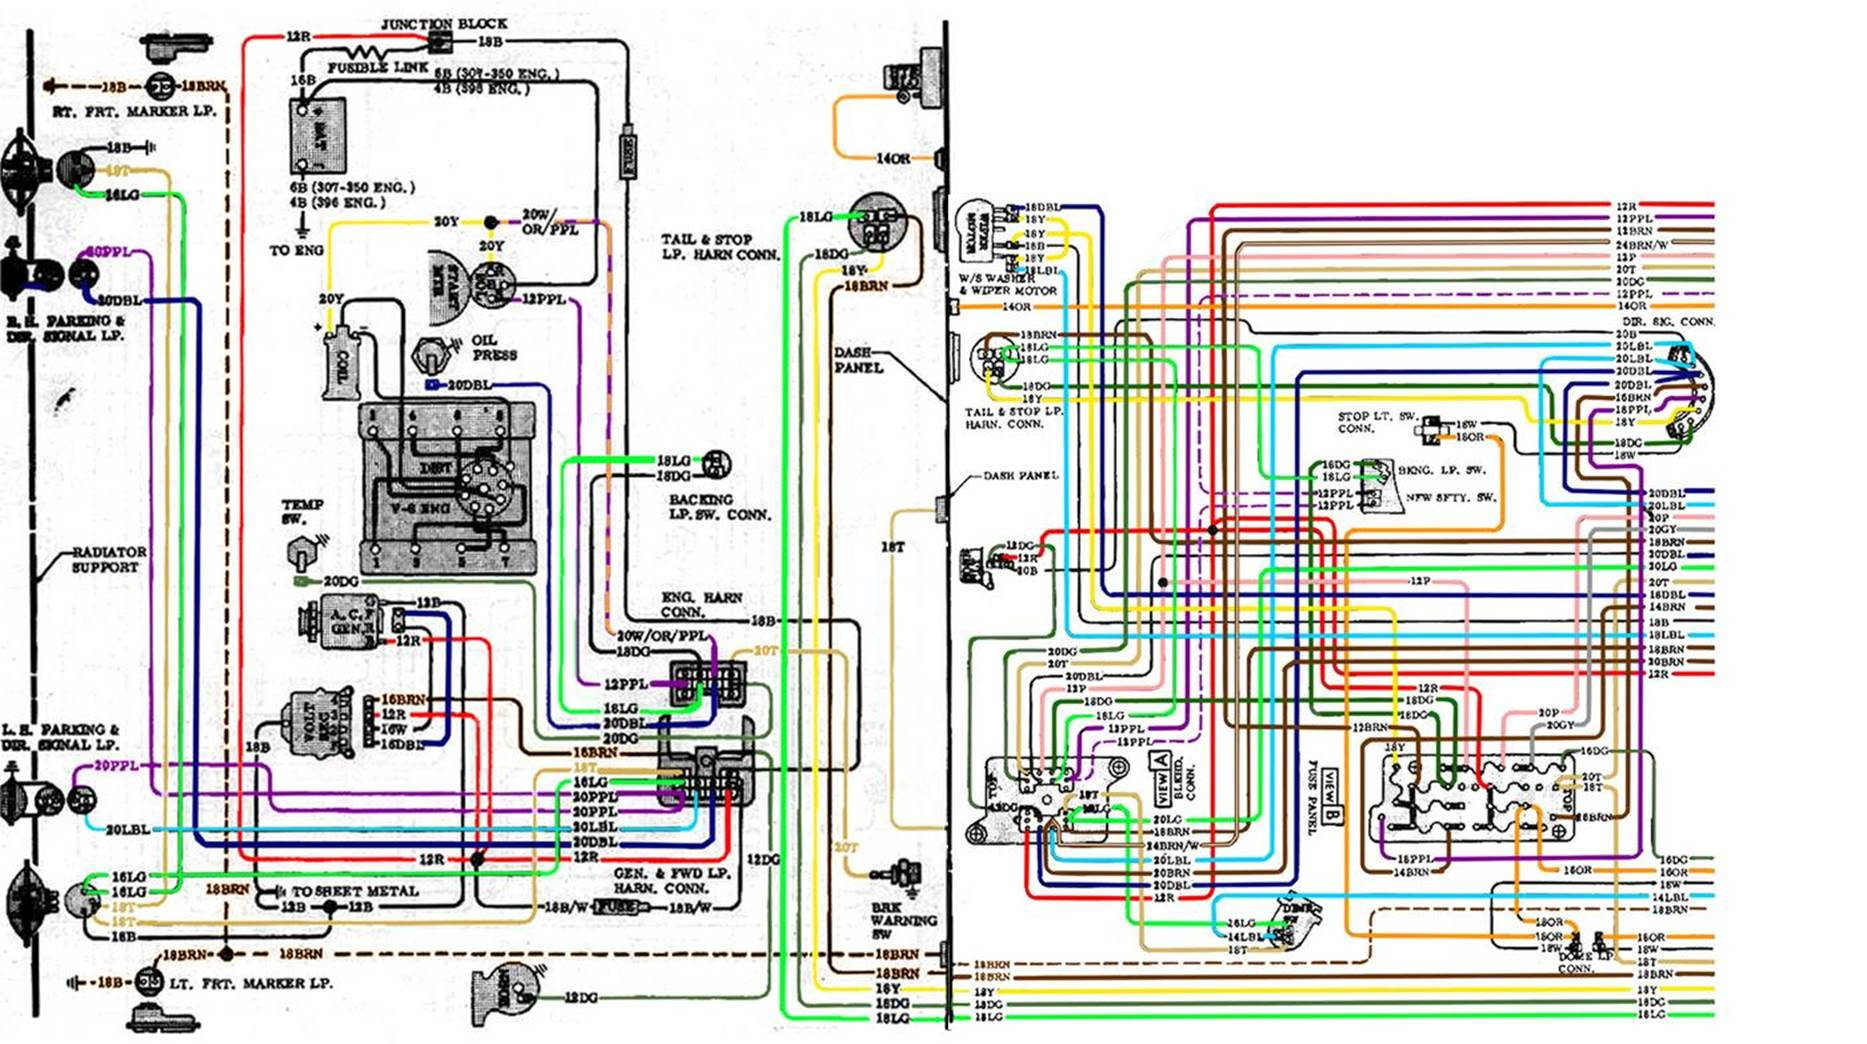 image002 67 72 chevy wiring diagram 1970 gmc truck wiring diagram at beritabola.co